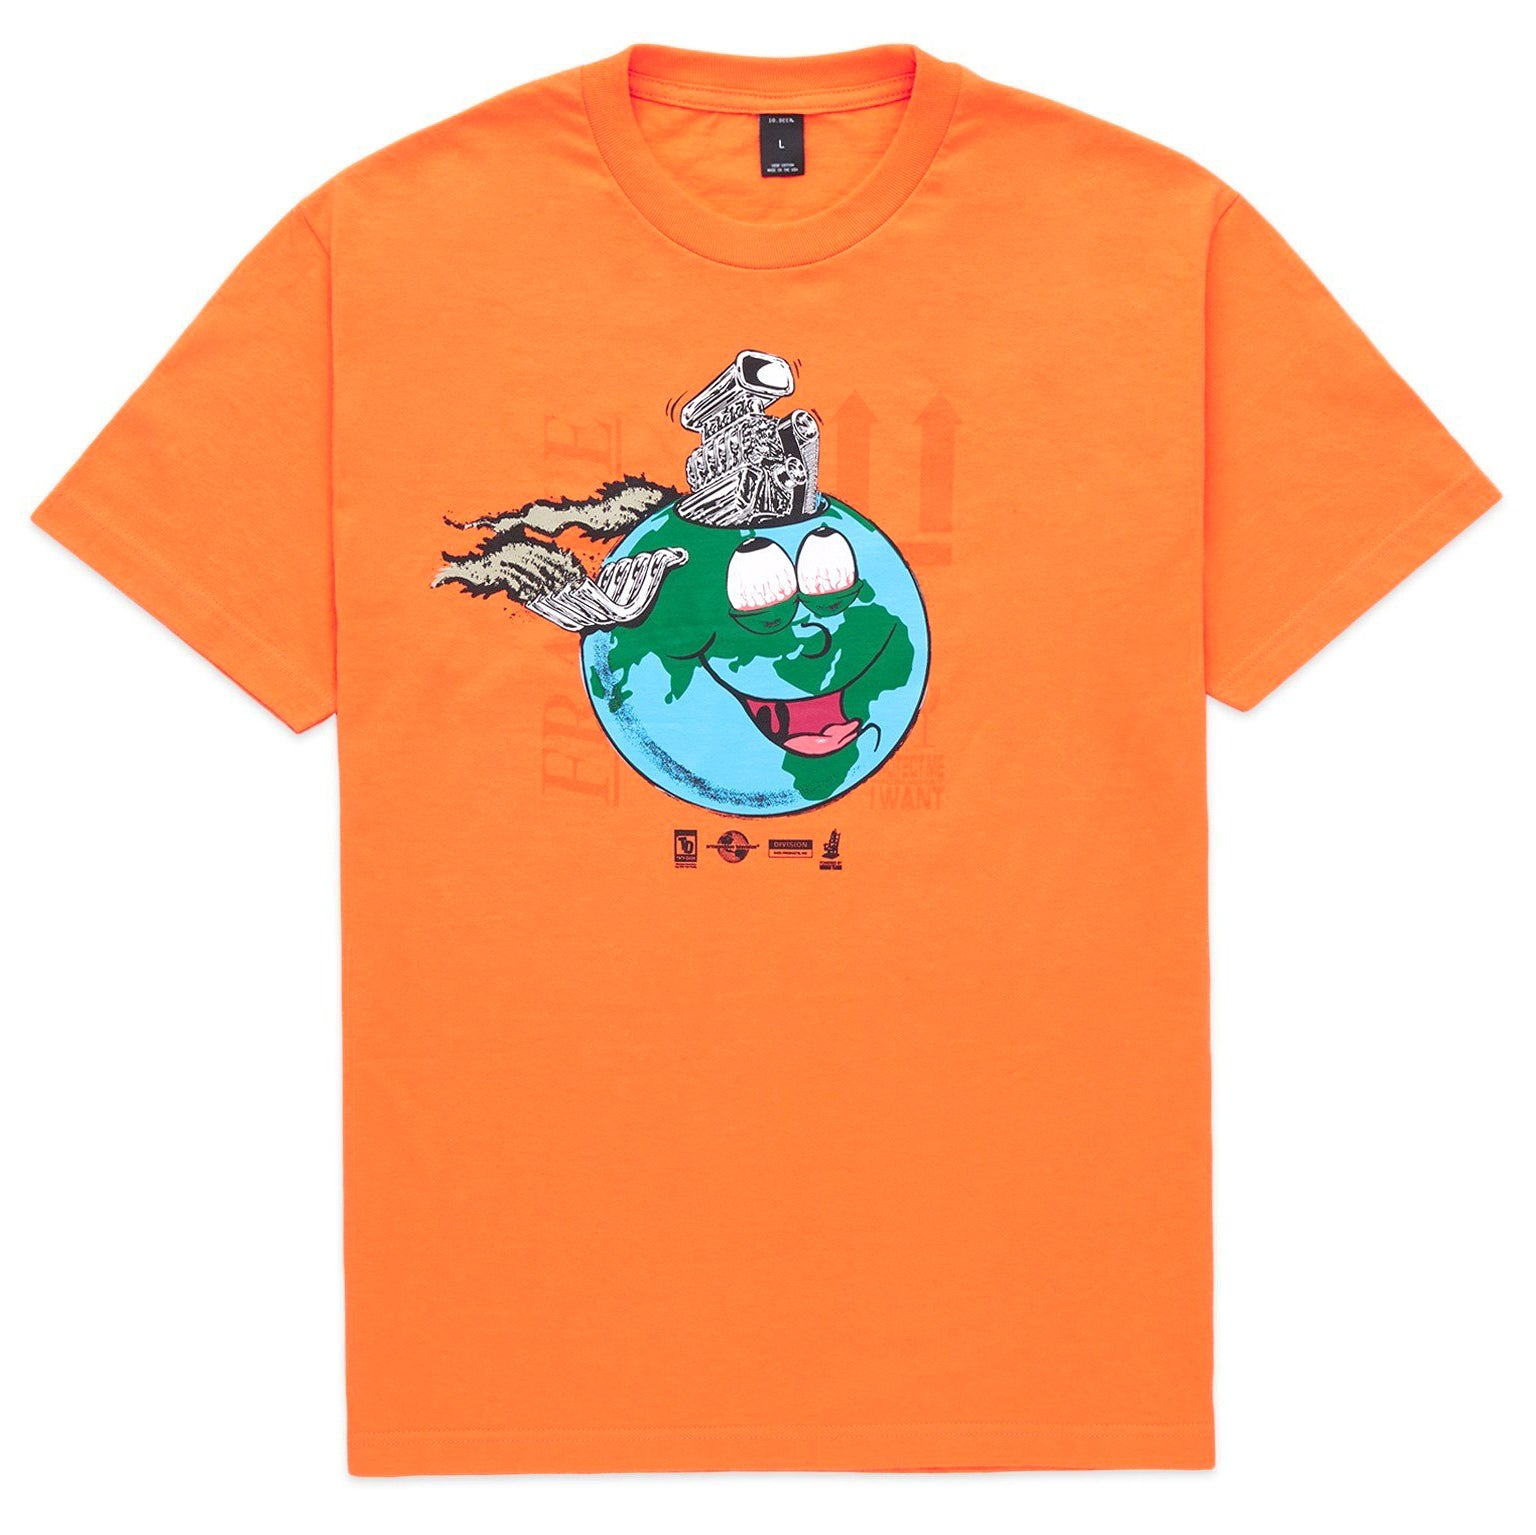 Let's Go To Hell Short Sleeve T-Shirt (Orange)